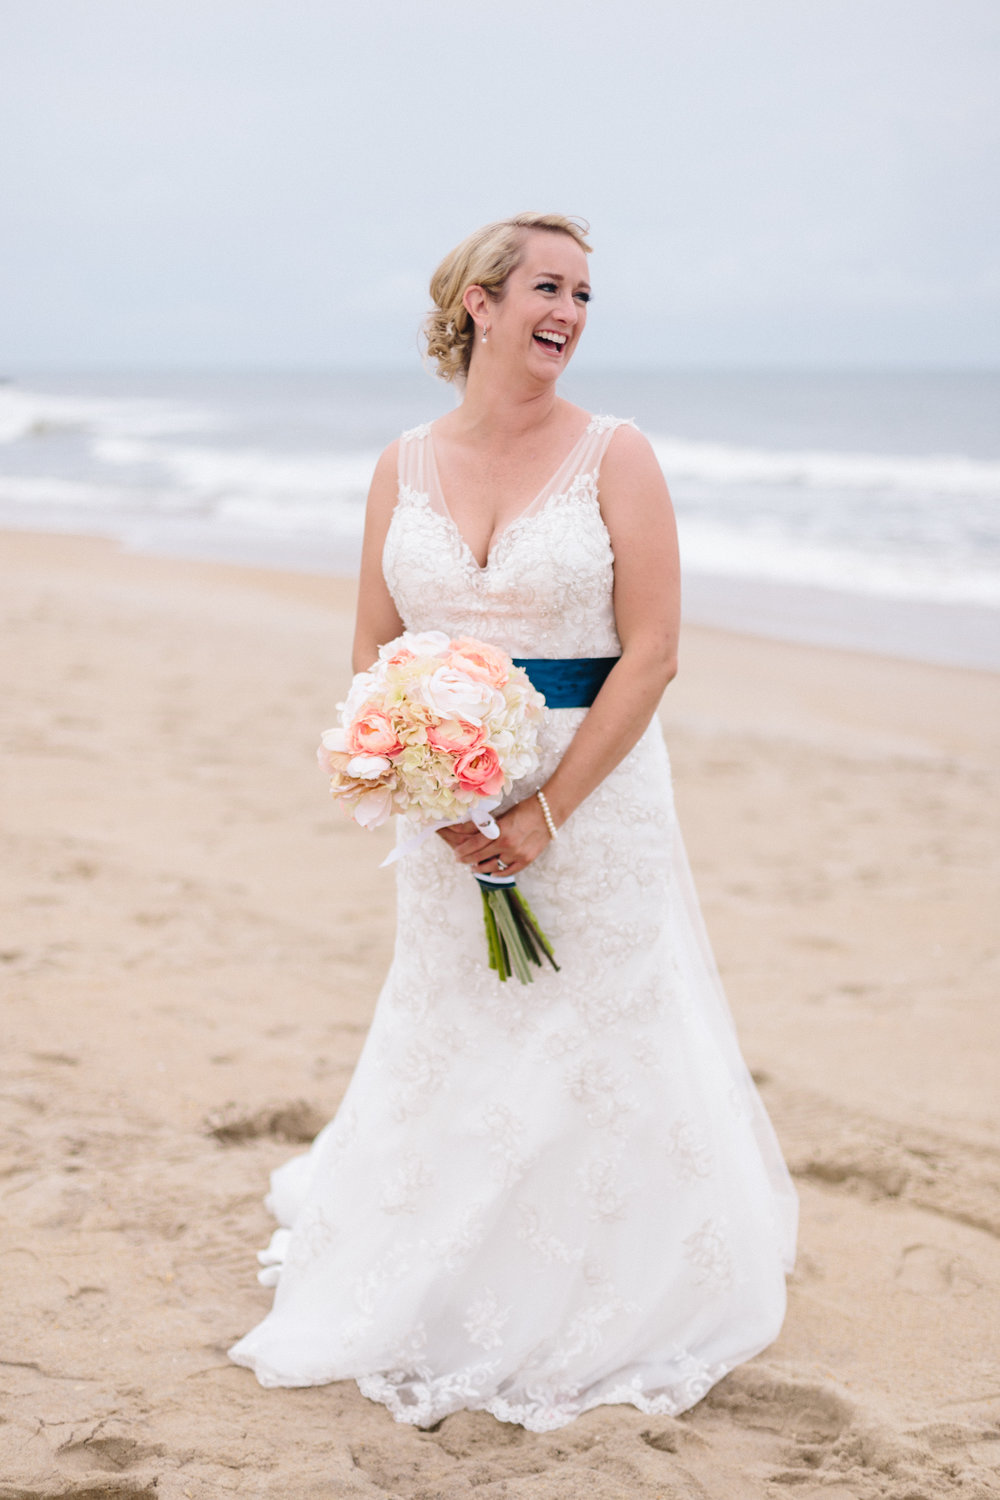 alyssa barletter photography buxton north carolina outer banks obx cape hatteras elopement intmate beach wedding-30.jpg